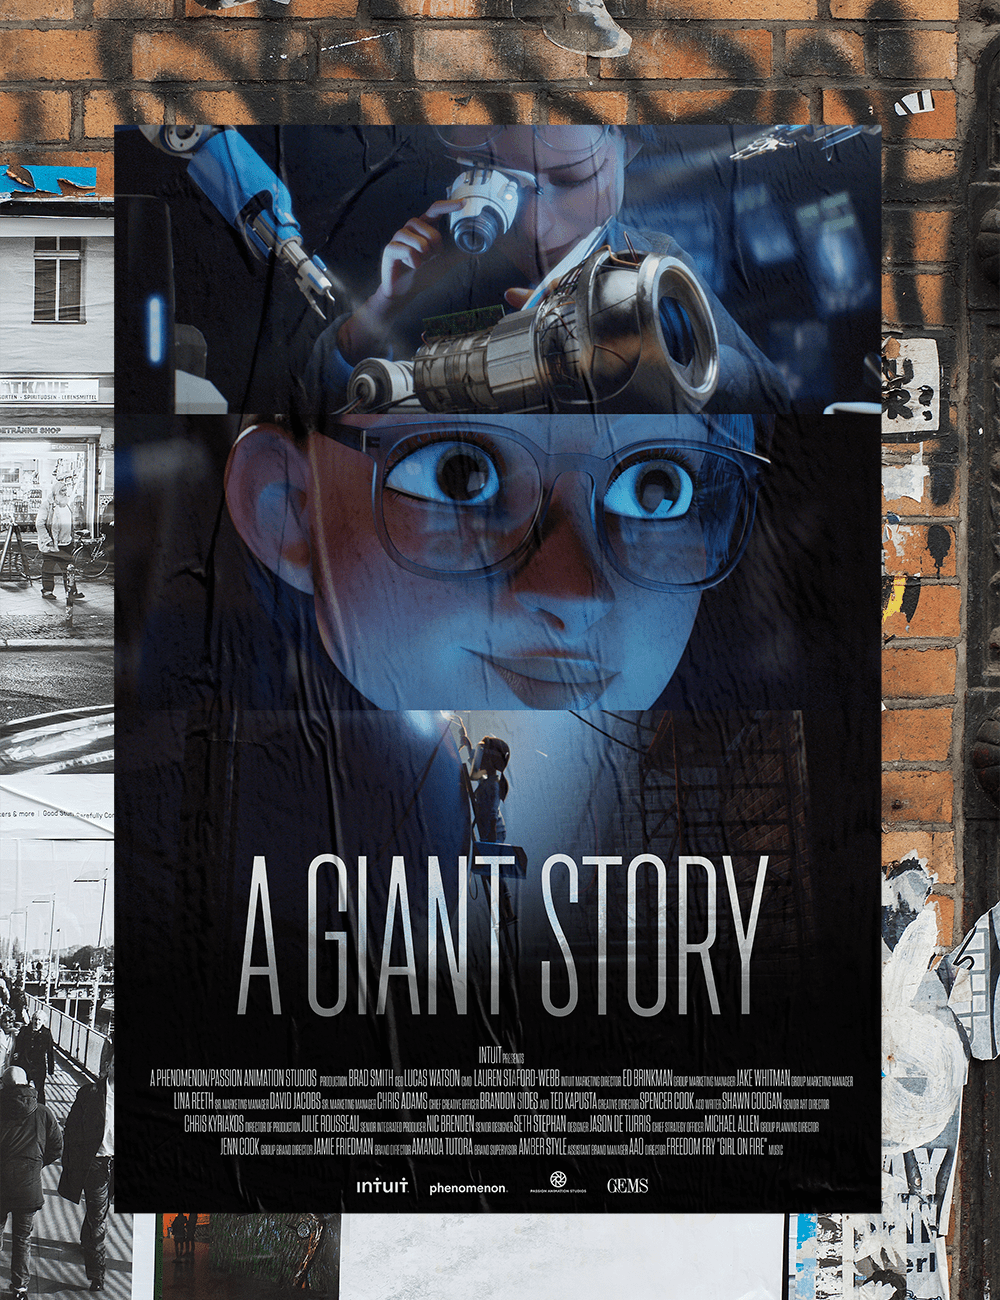 A Giant Story